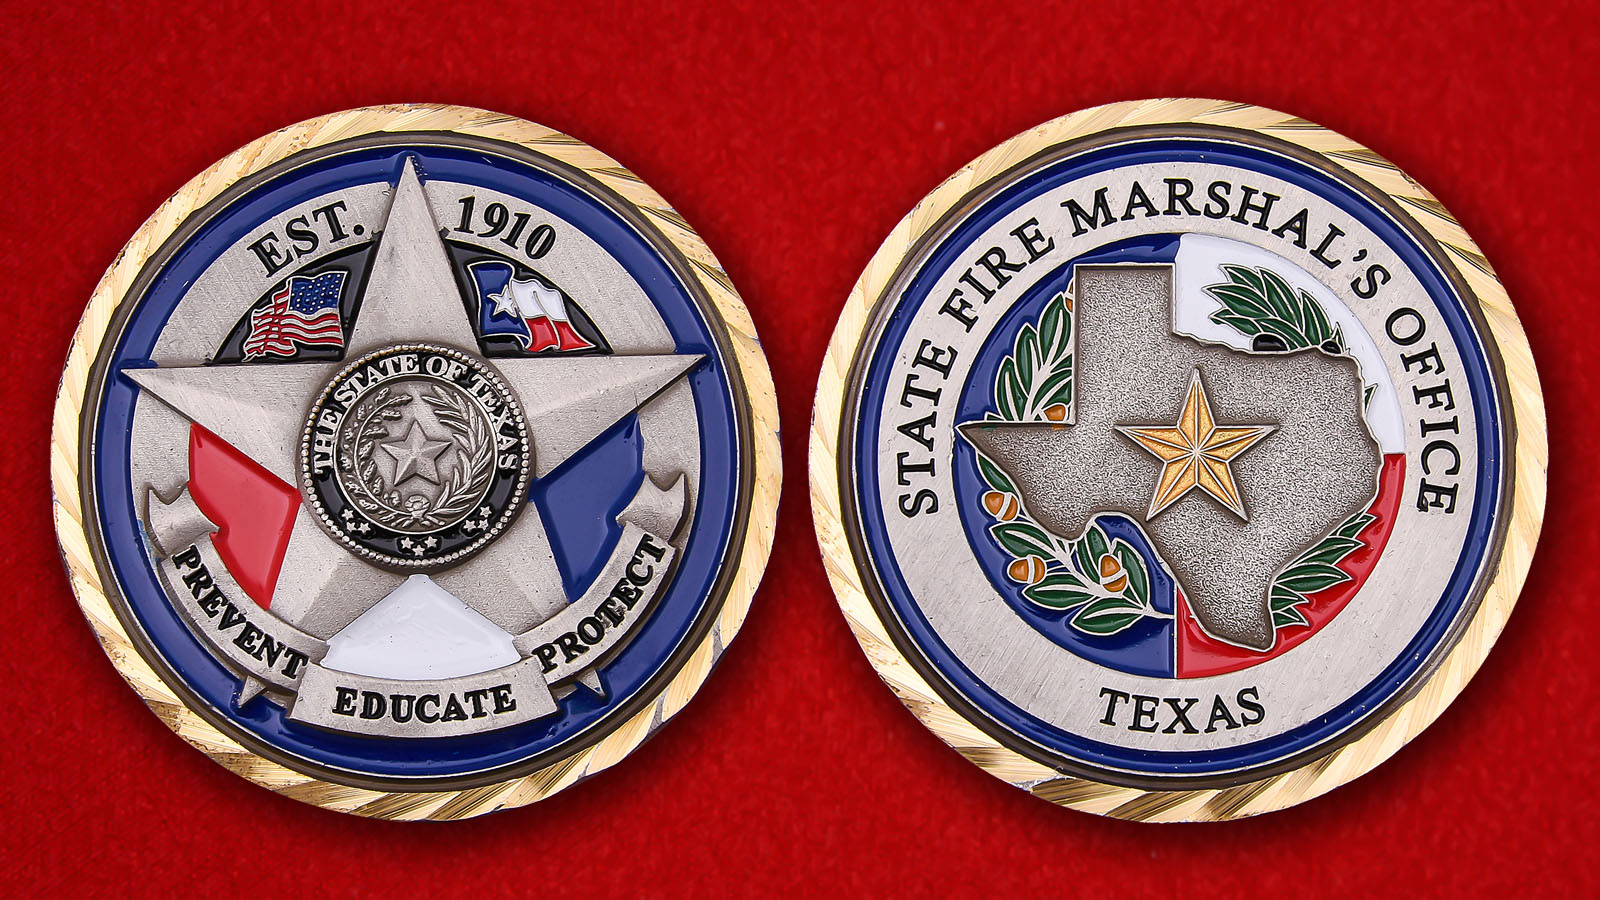 State Fire Marshal - obverse and reverse